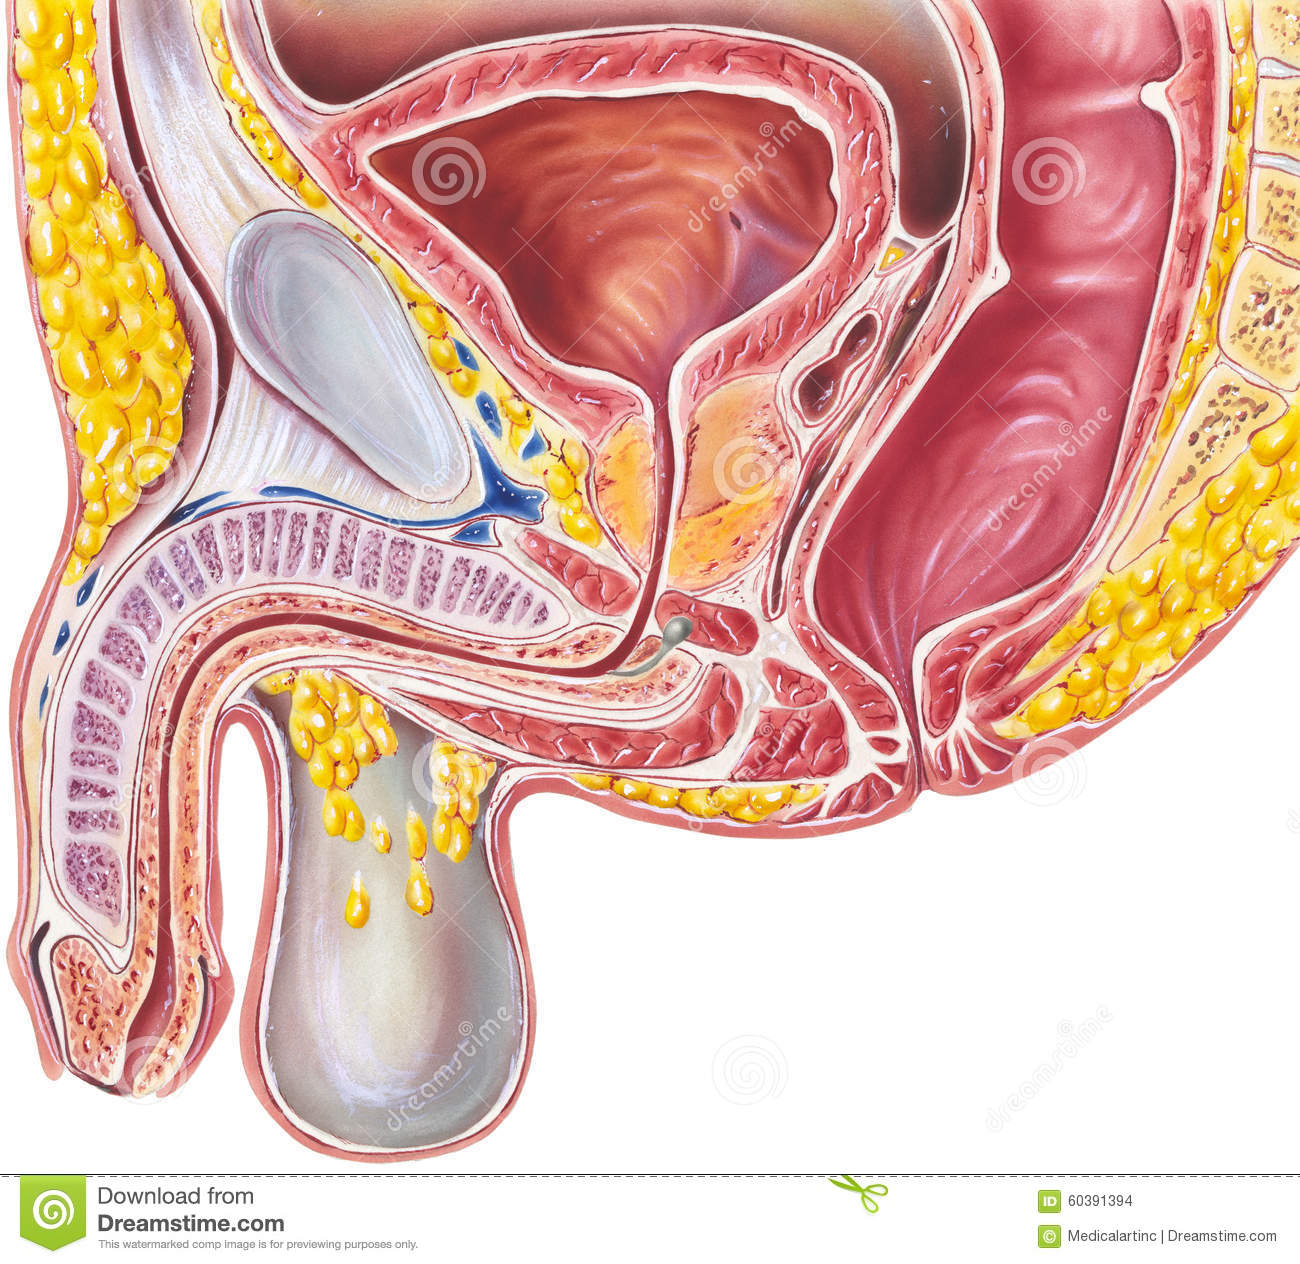 Pelvis - Male Cutaway View stock photo. Image of prostate - 60391394